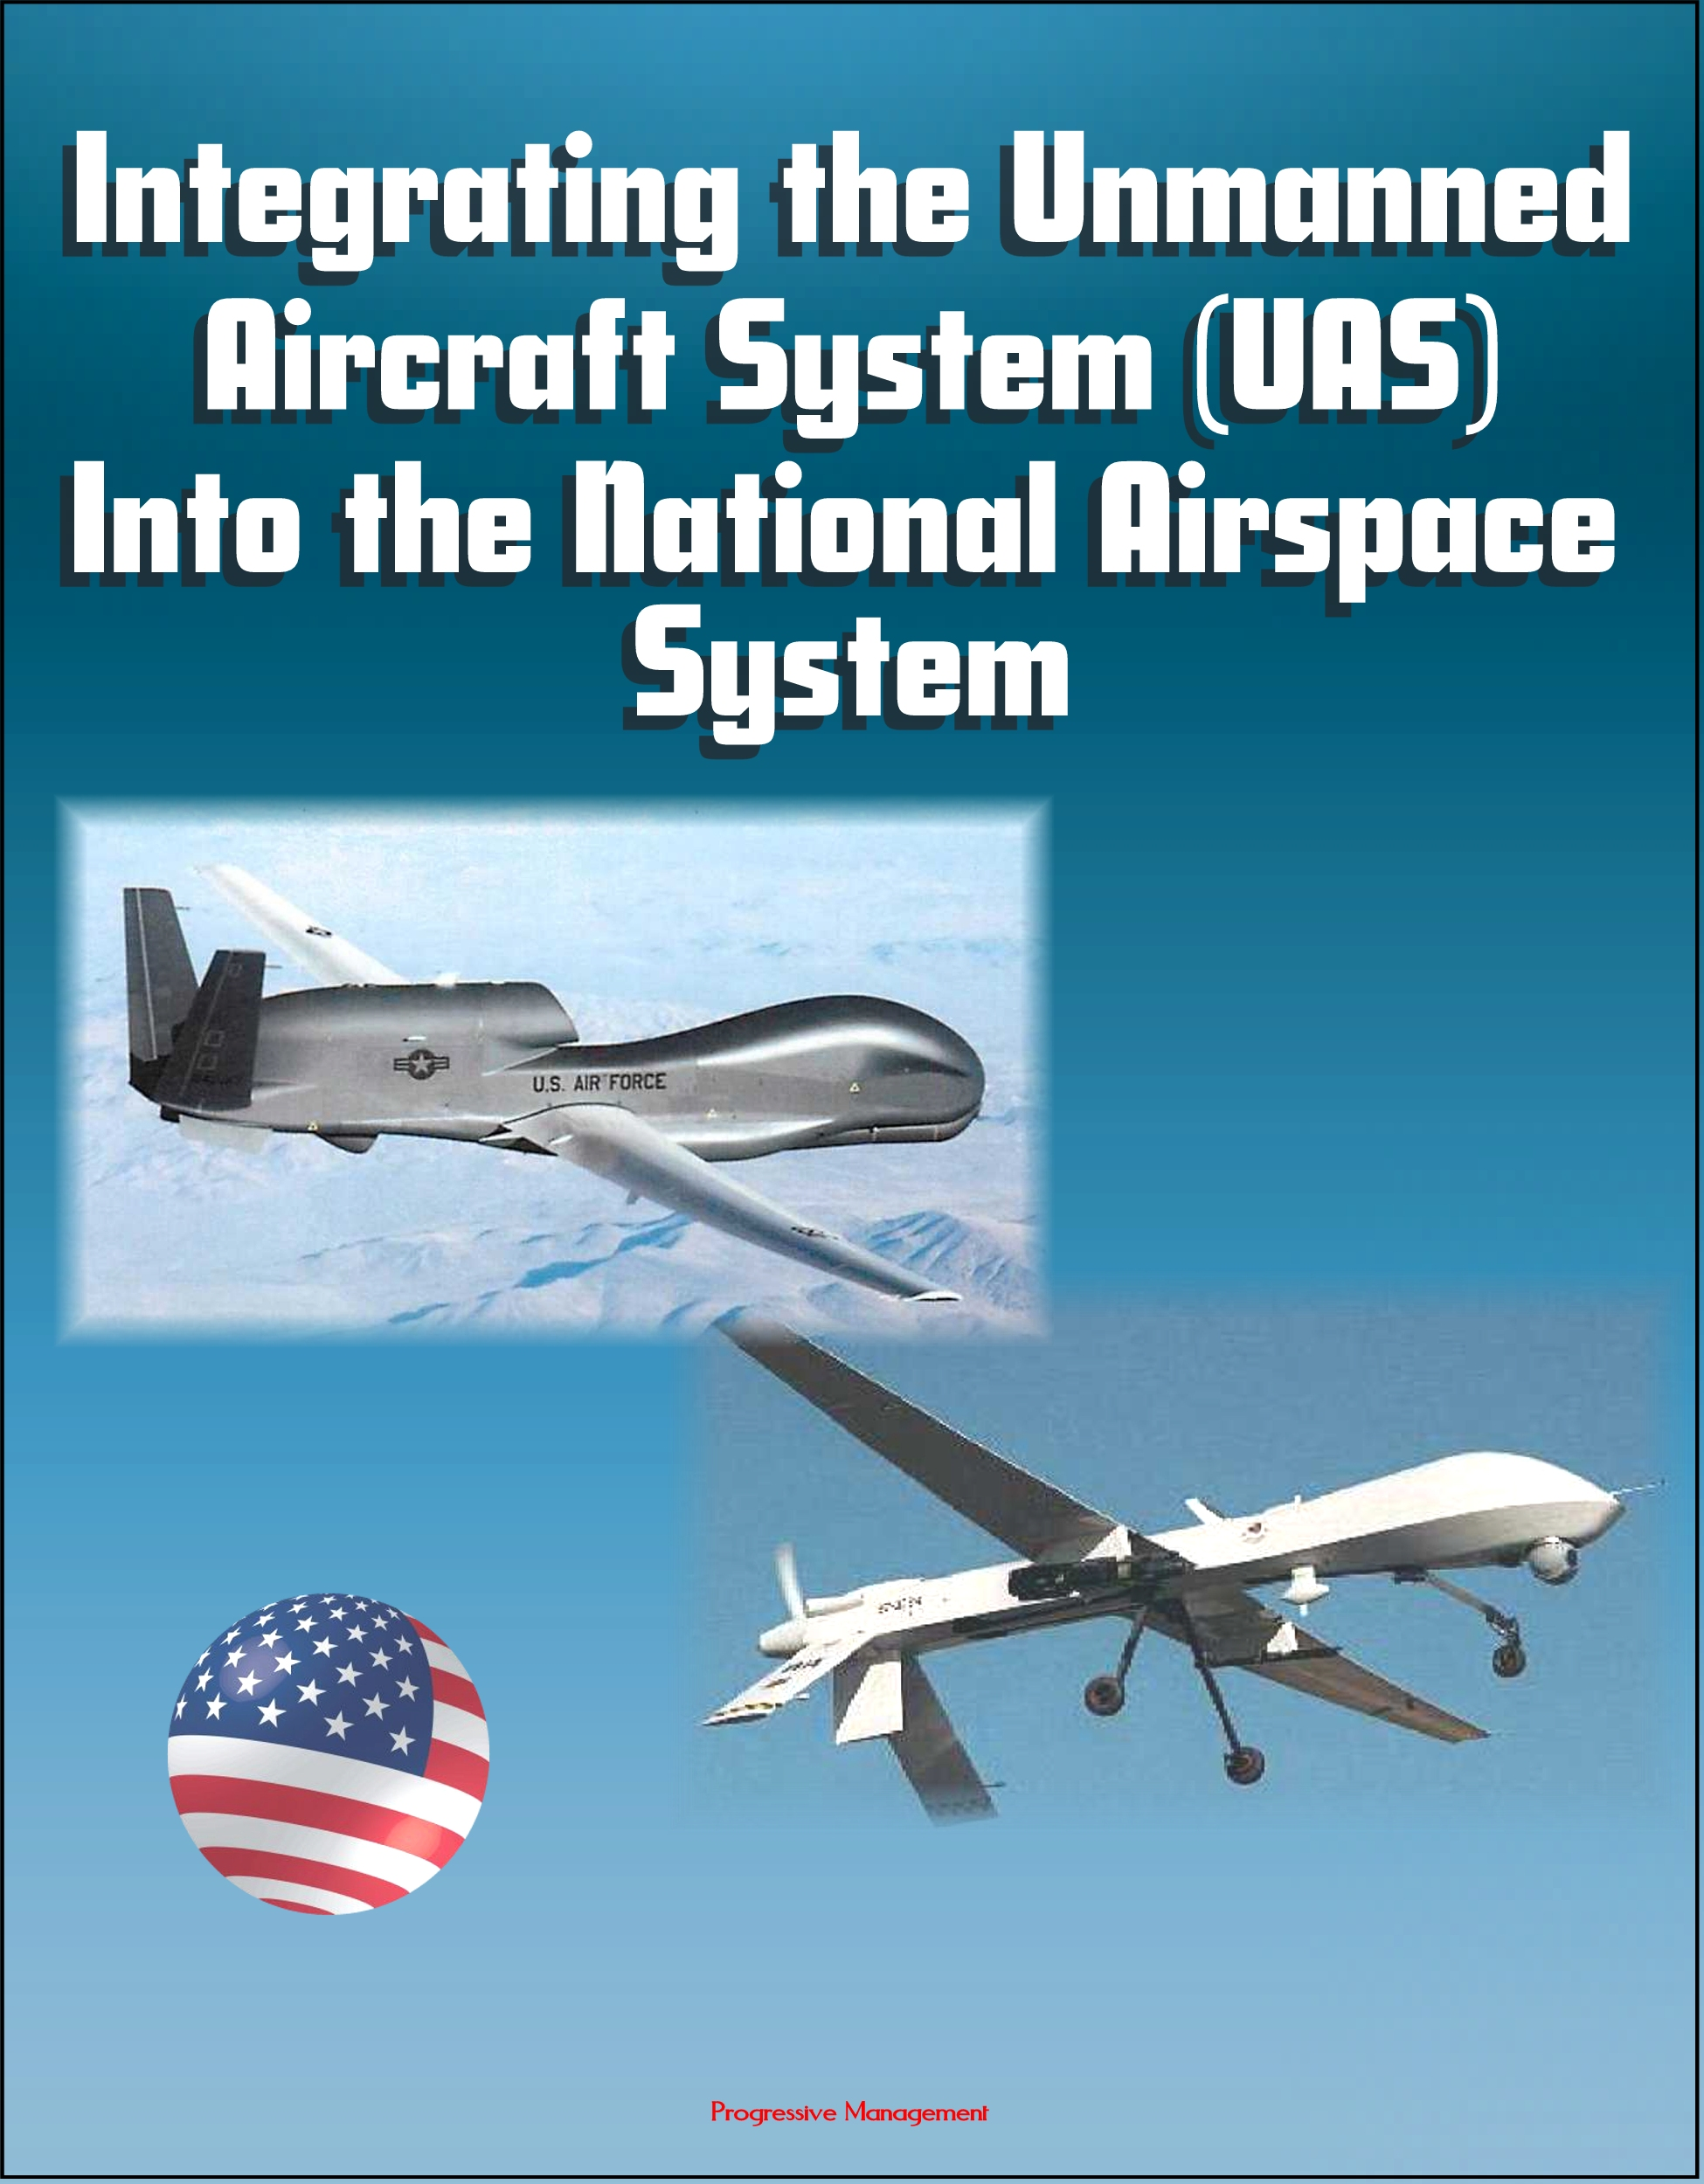 aircraft systems and the importance of